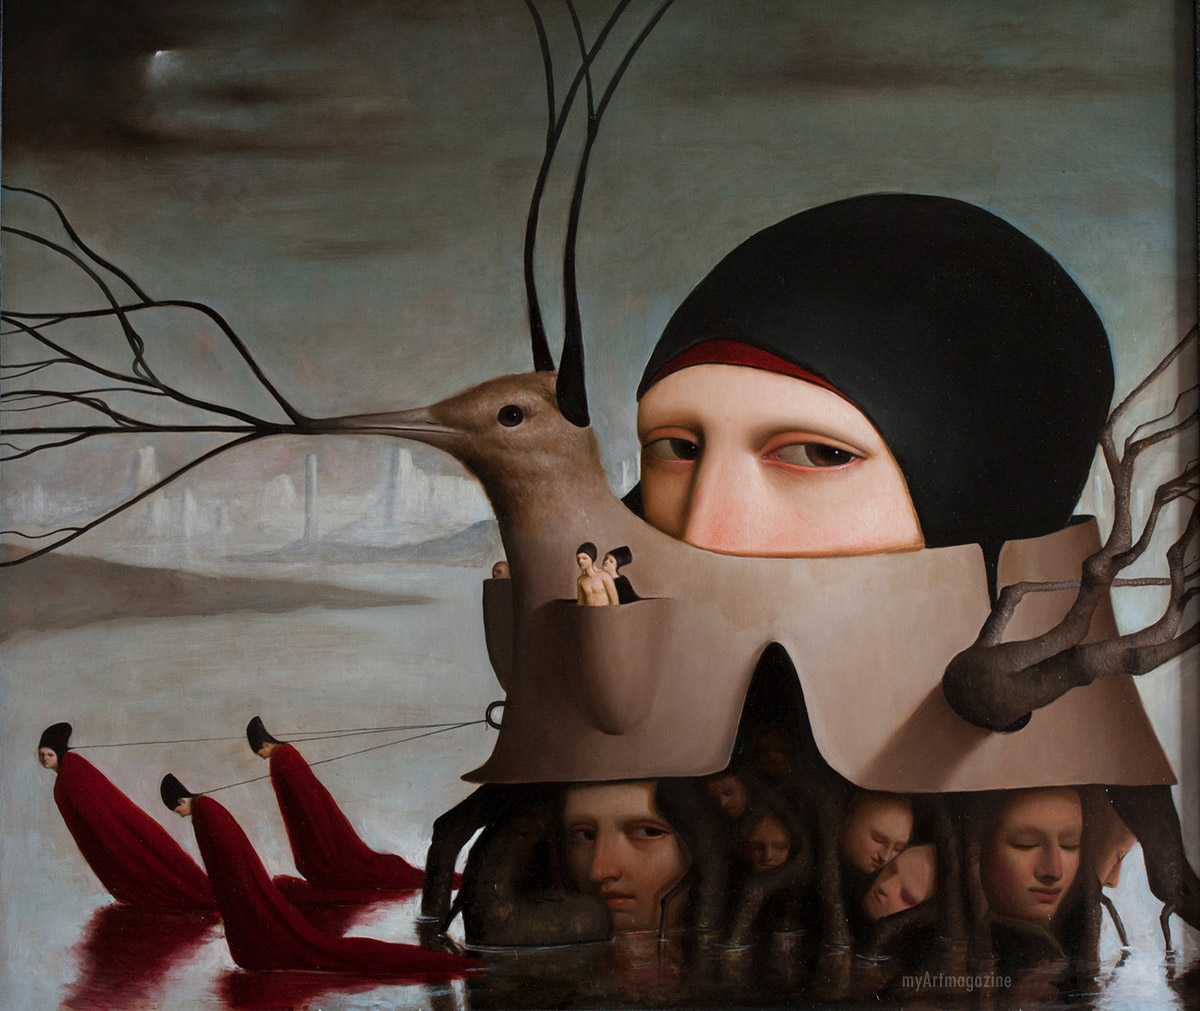 oil paintings surreal by alessandro sicioldr